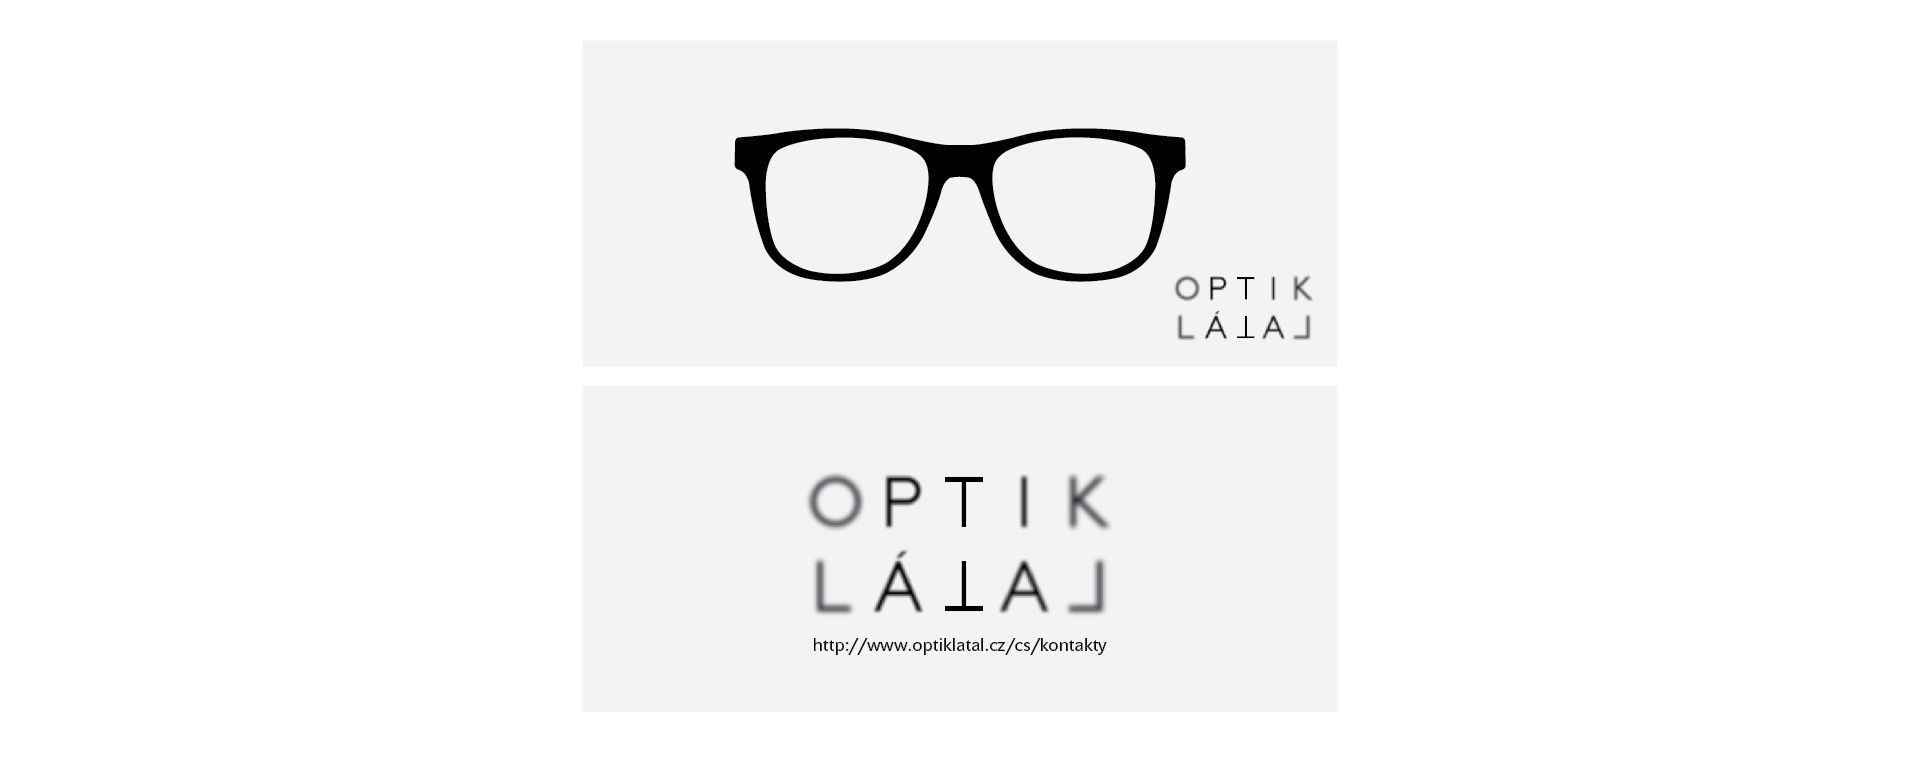 Graphic design of glasses case for Optik Látal